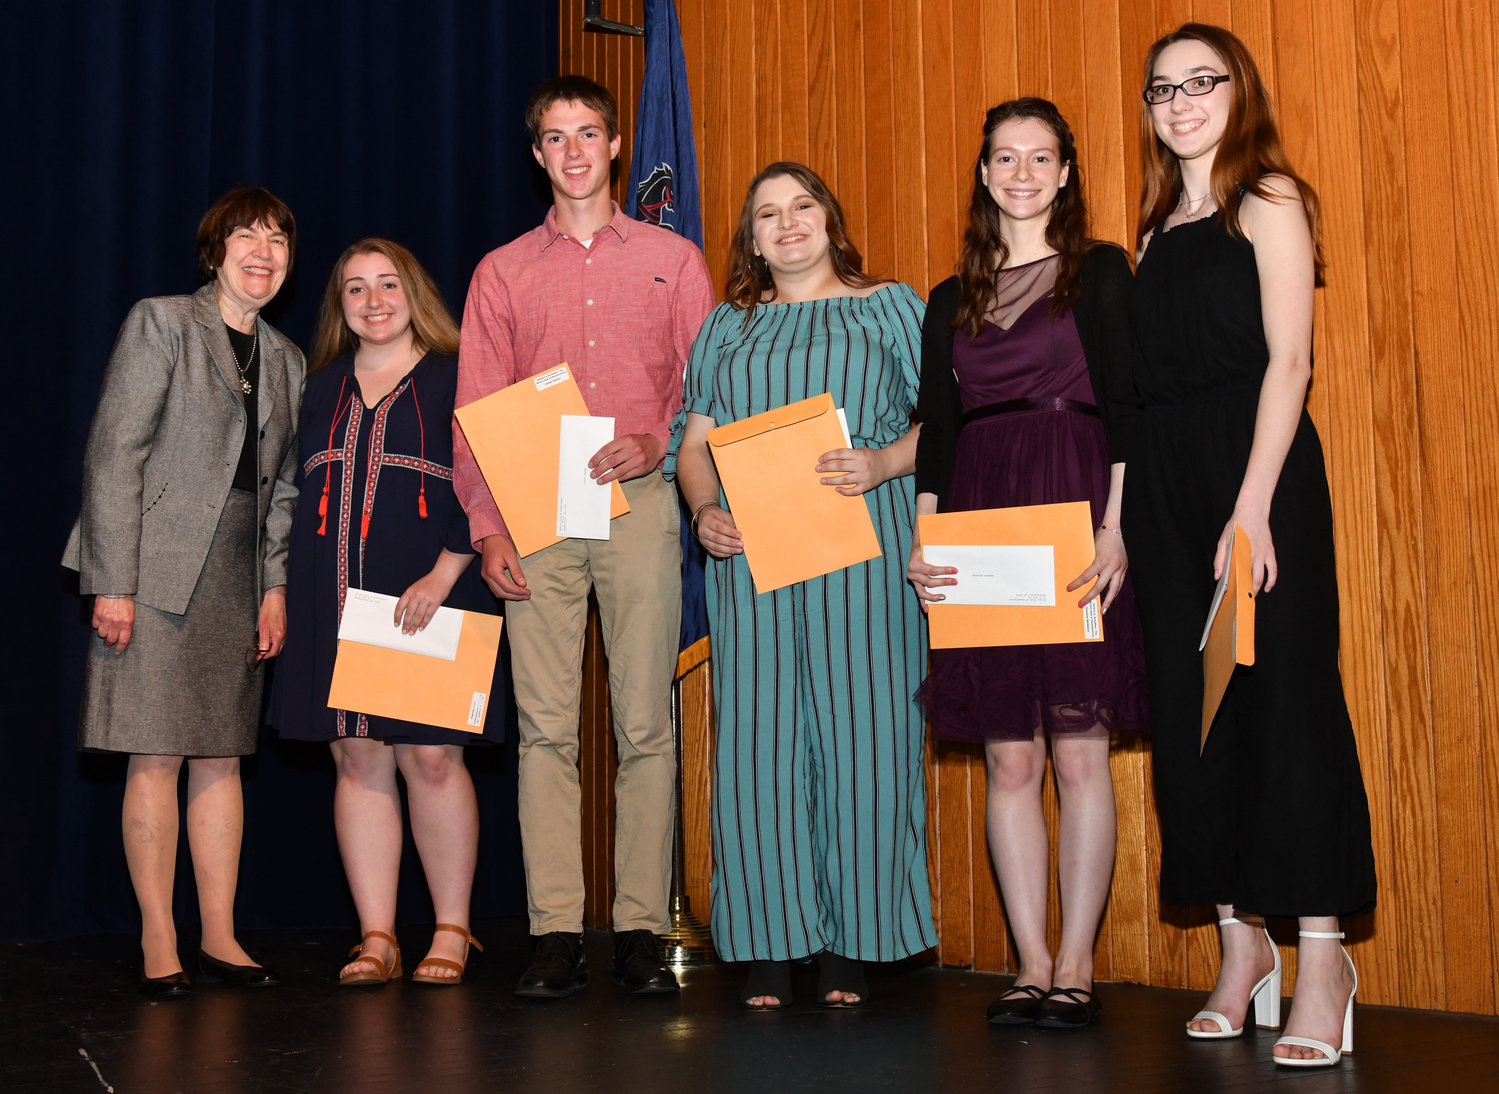 The Rotary Club of Hummelstown recently presented five graduating Lower Dauphin High School students with $2,000 scholarships. Rotary Club member Jean Seibert, left, presents the scholarships on behalf of the club to graduating seniors Madison Shradley, Josiah Helmer, Carli Little, Vanessa Skidmore and Sophia Yocum. The scholarships, named in honor of Herbert A. Schaffner, are given to seniors who demonstrate good character and academic excellence. The scholarship fund is maintained with proceeds from the club's annual golf outing. Now in its 27th year, the golf tournament has provided funding for more than $240,000 in scholarships to Lower Dauphin students.